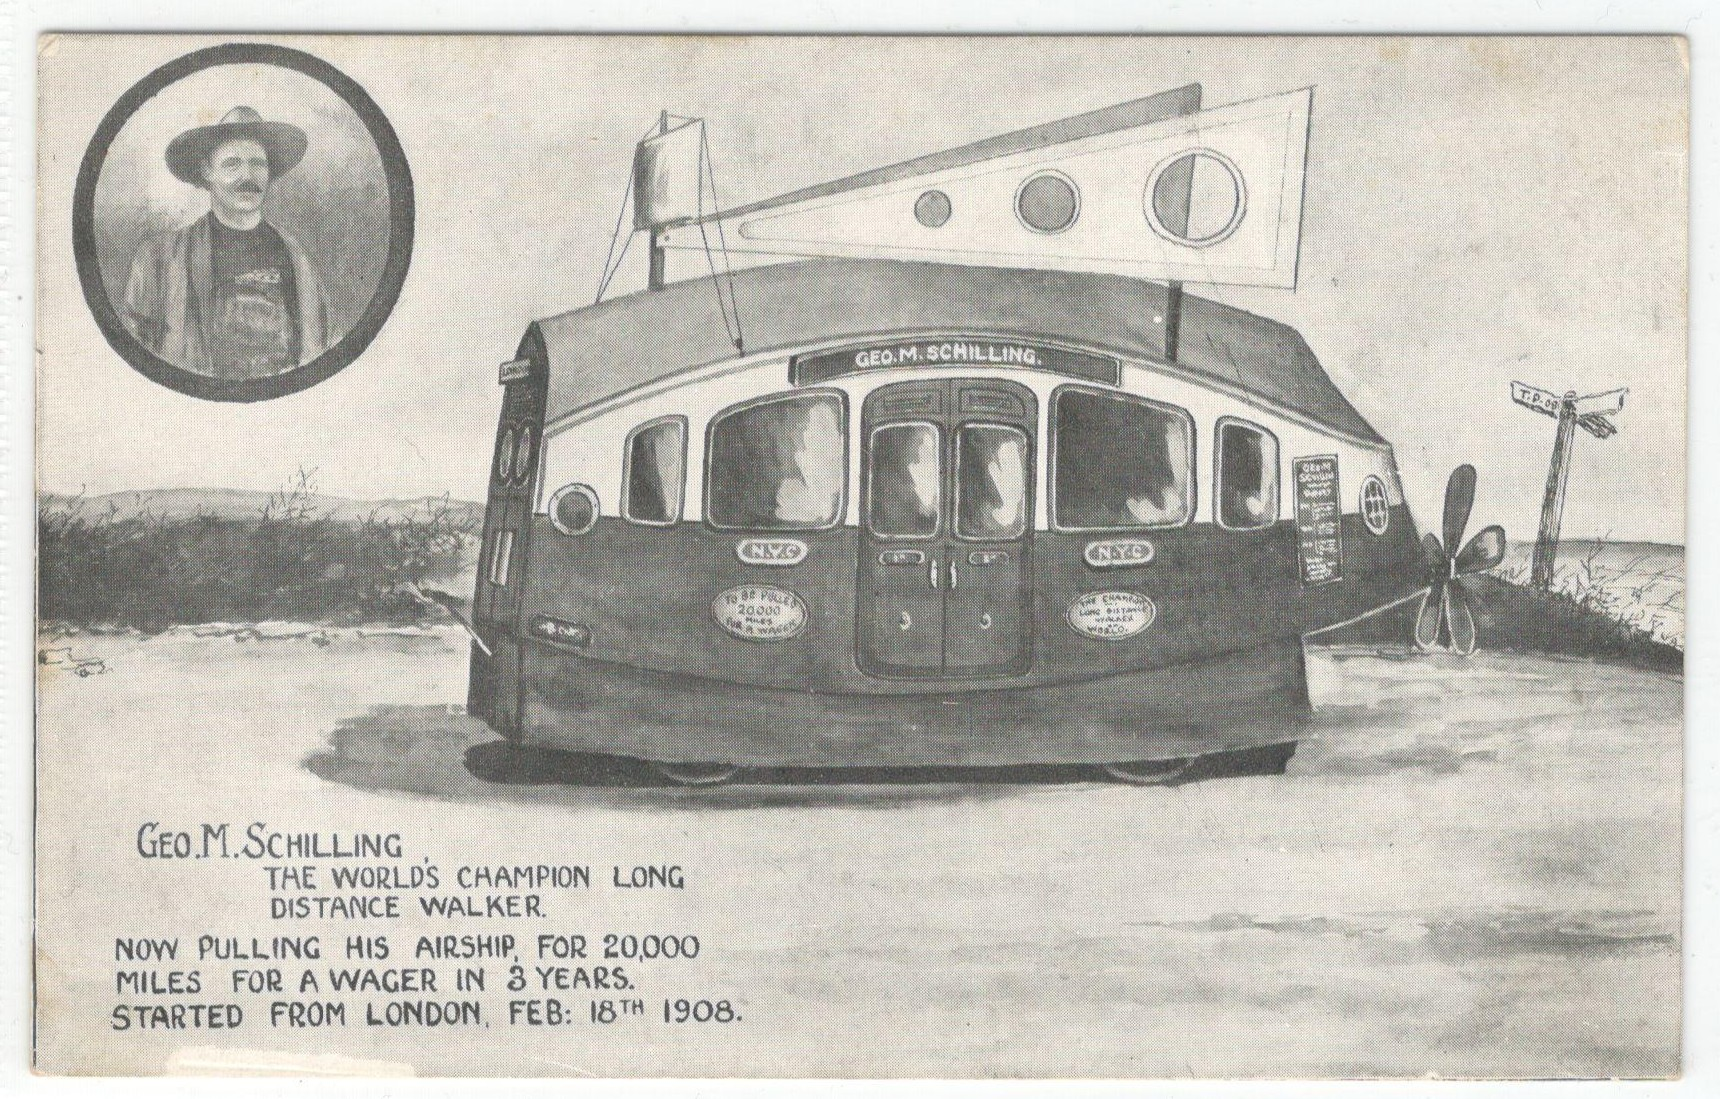 Lot 115 - GEO.M.SCHILLING THE WORLD'S CHAMPION LONG DISTANCE WALKER NOW PULLING HIS AIRSHIP FOR 20 000 MILES